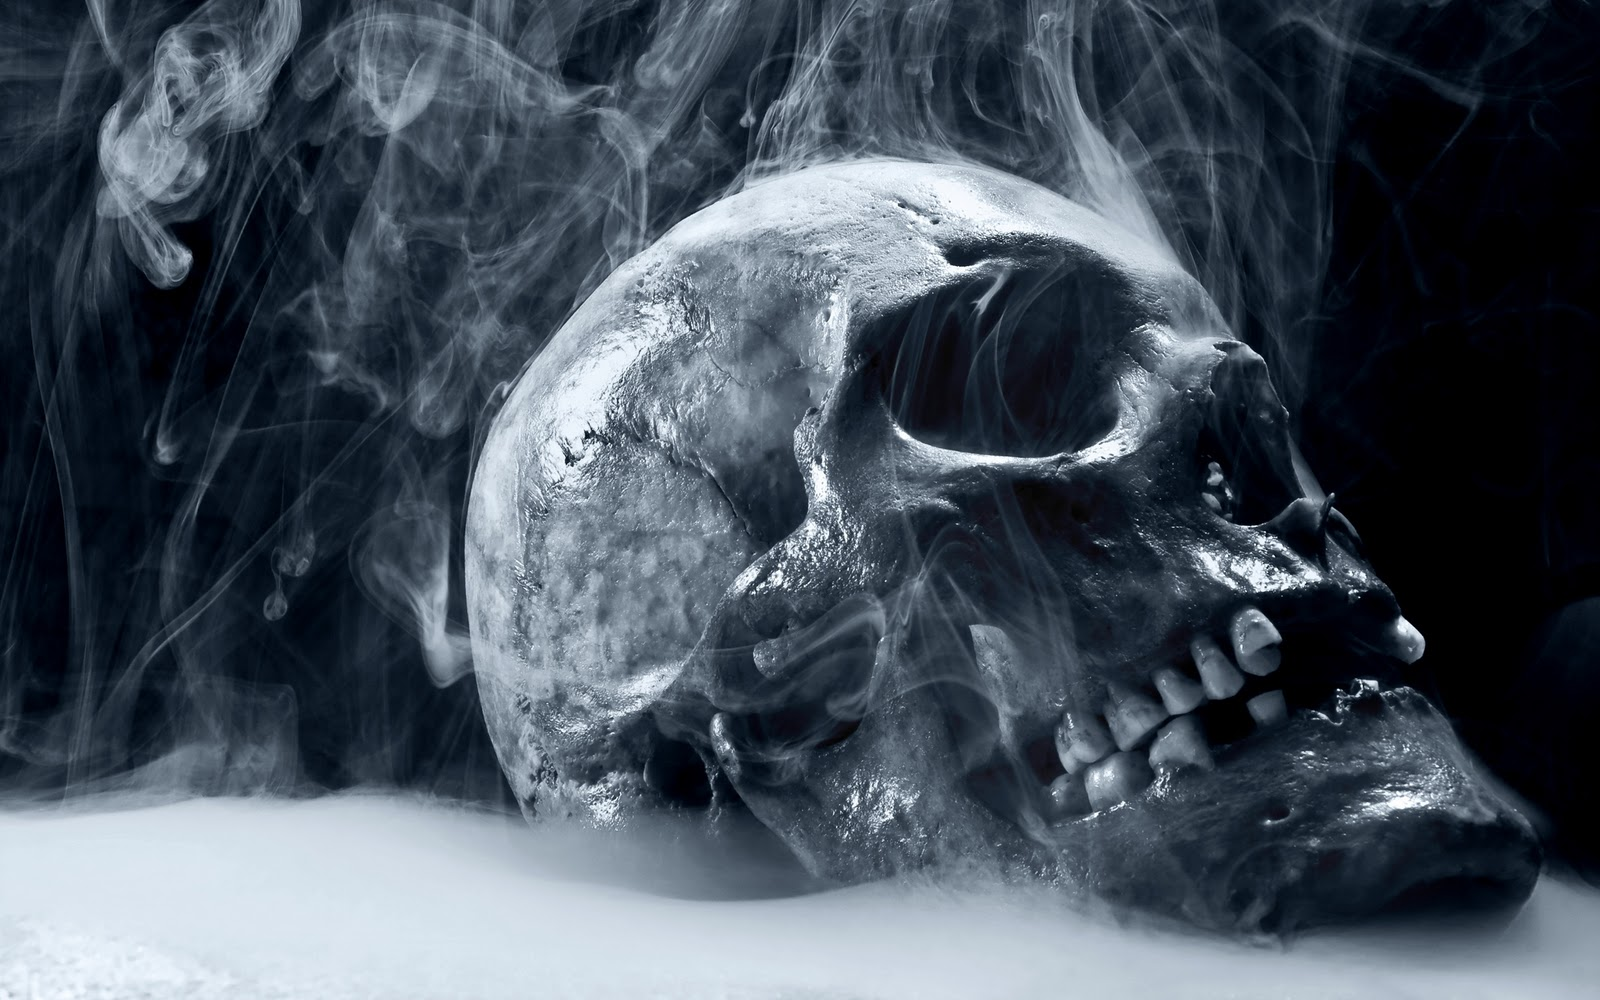 http://2.bp.blogspot.com/-VFpdlx0OGgE/Tc6vHQ_FDdI/AAAAAAAABYs/0etXCUoa6ds/s1600/Archive_Miscellaneous_Skull_smoking-skull-horror-hd-wallpaper.jpg